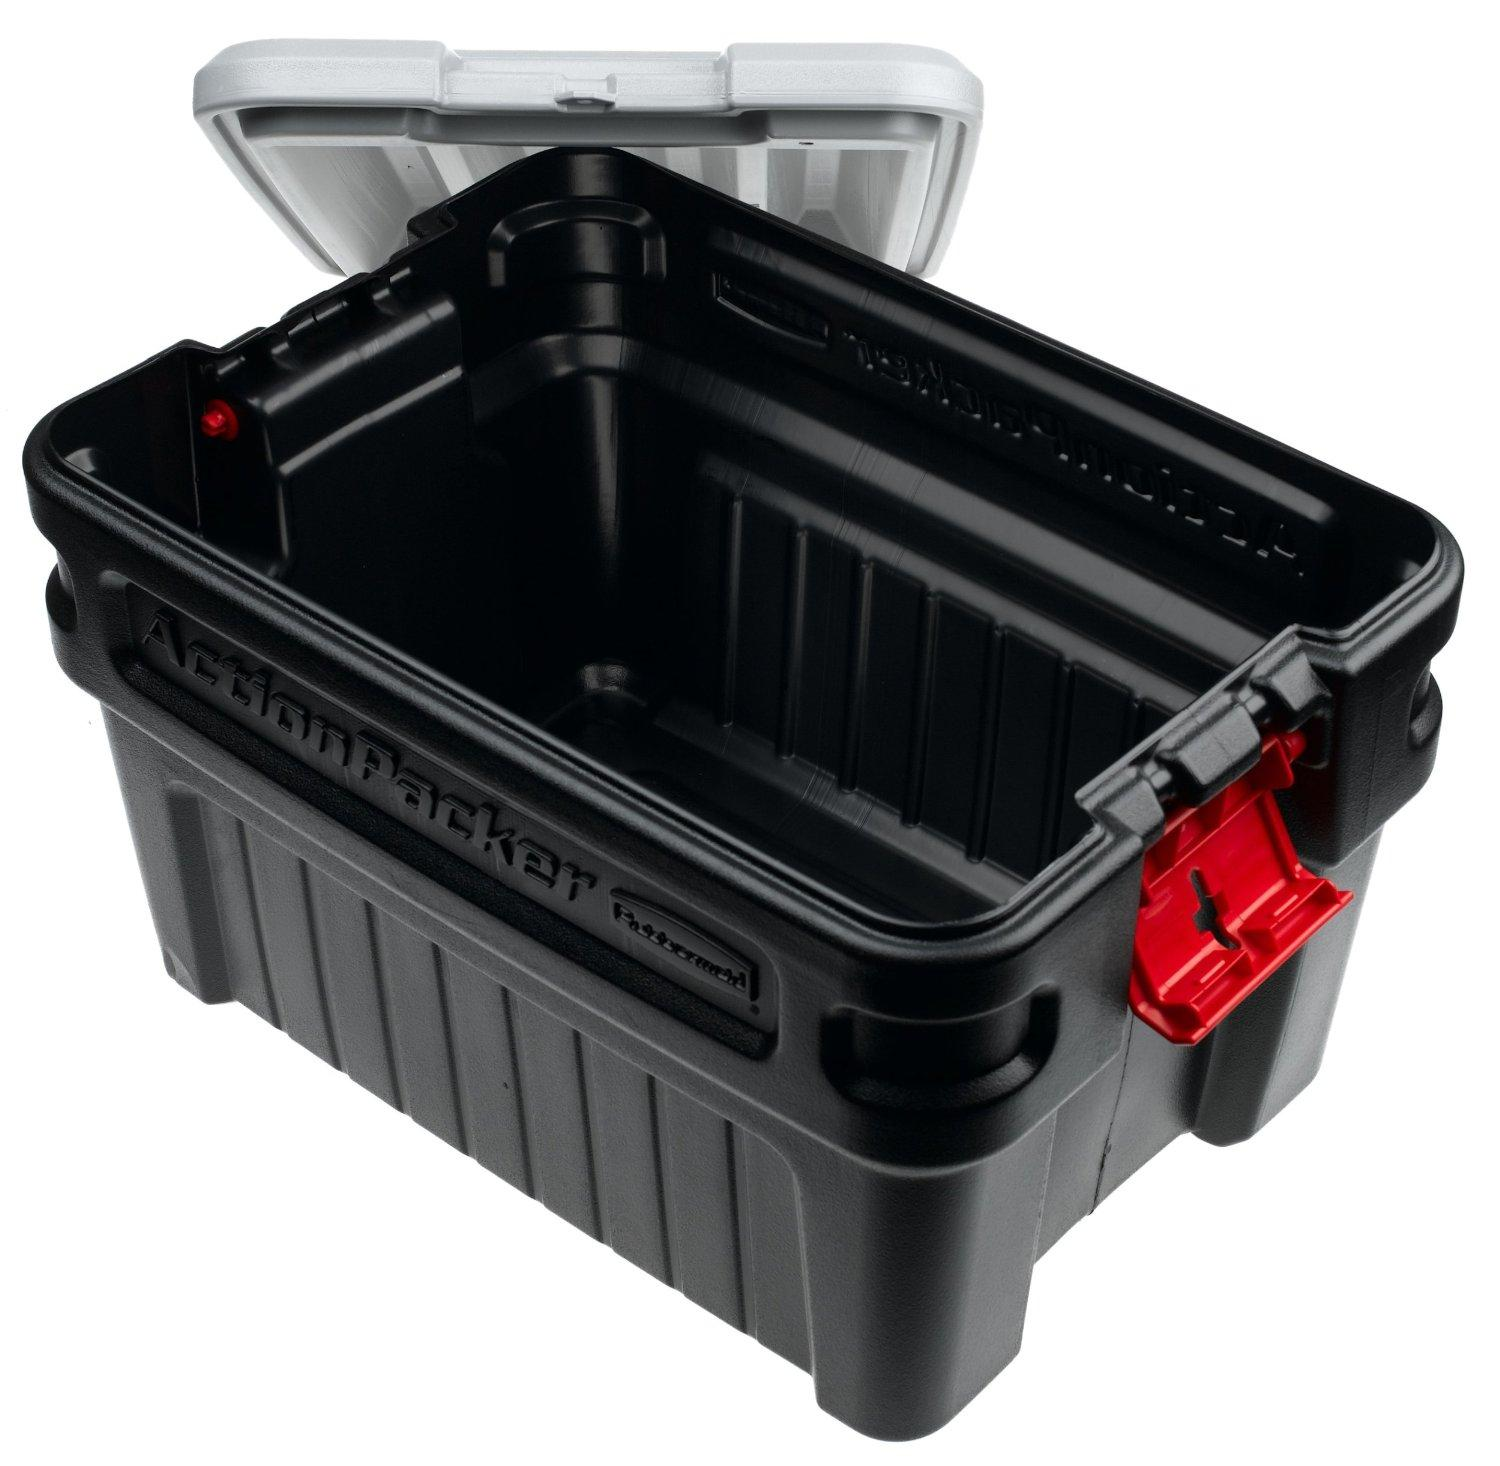 Rubbermaid 1172 ActionPacker Storage Box, 24